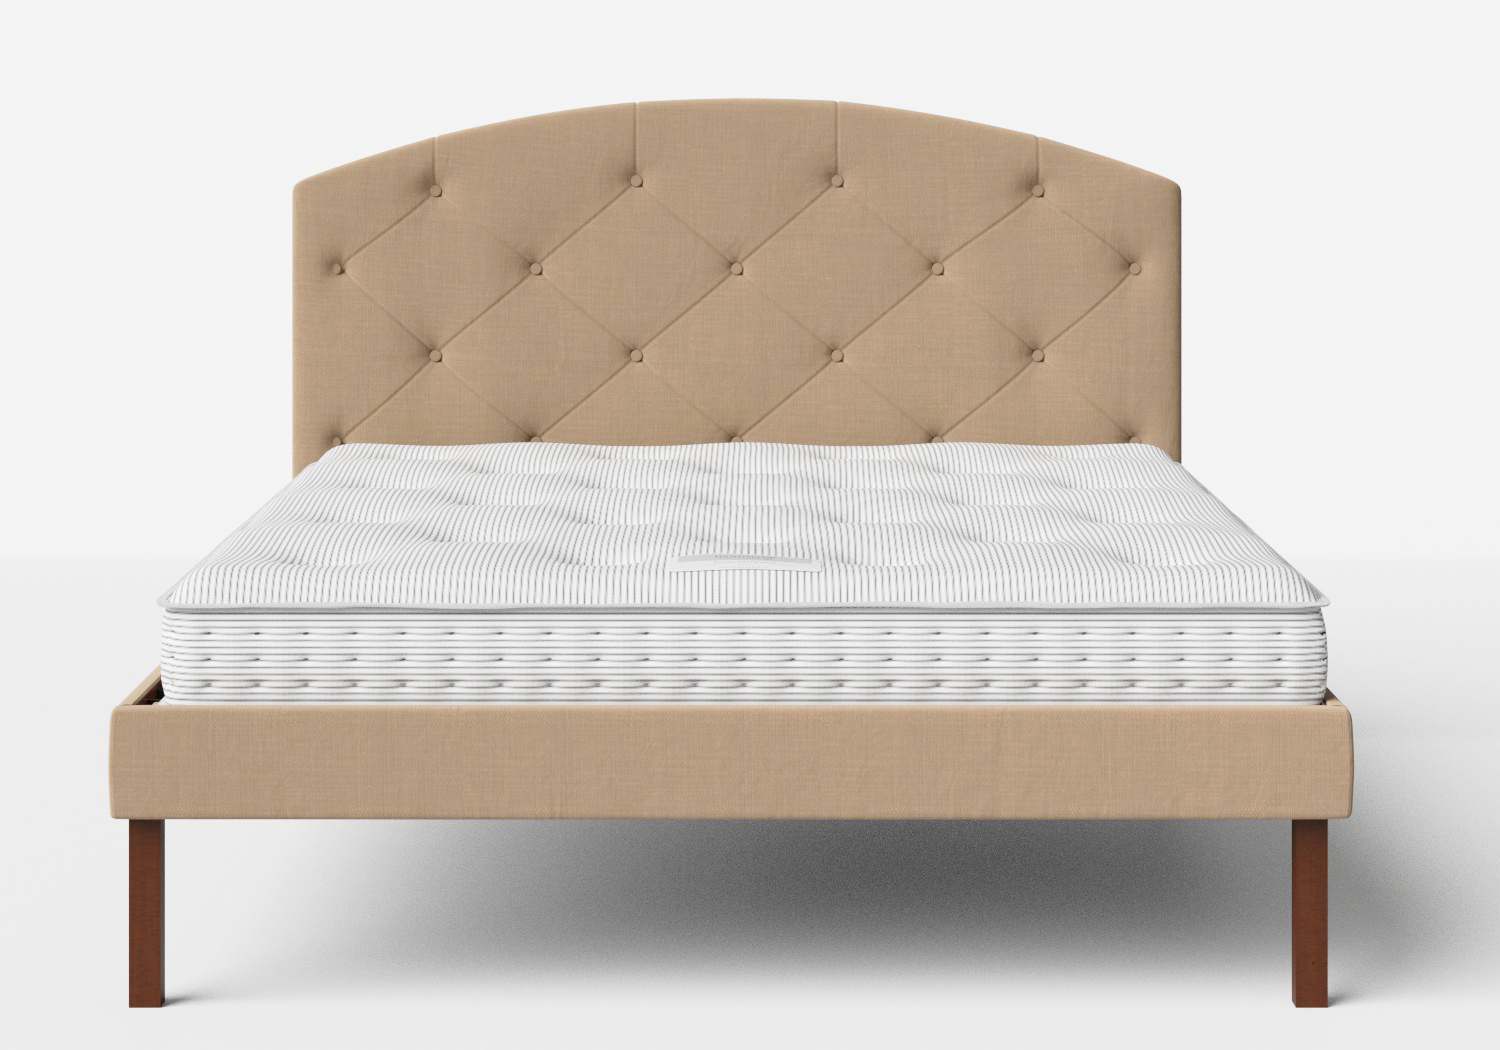 Okawa Upholstered Bed in Straw fabric with buttoning shown with Juno 1 mattress